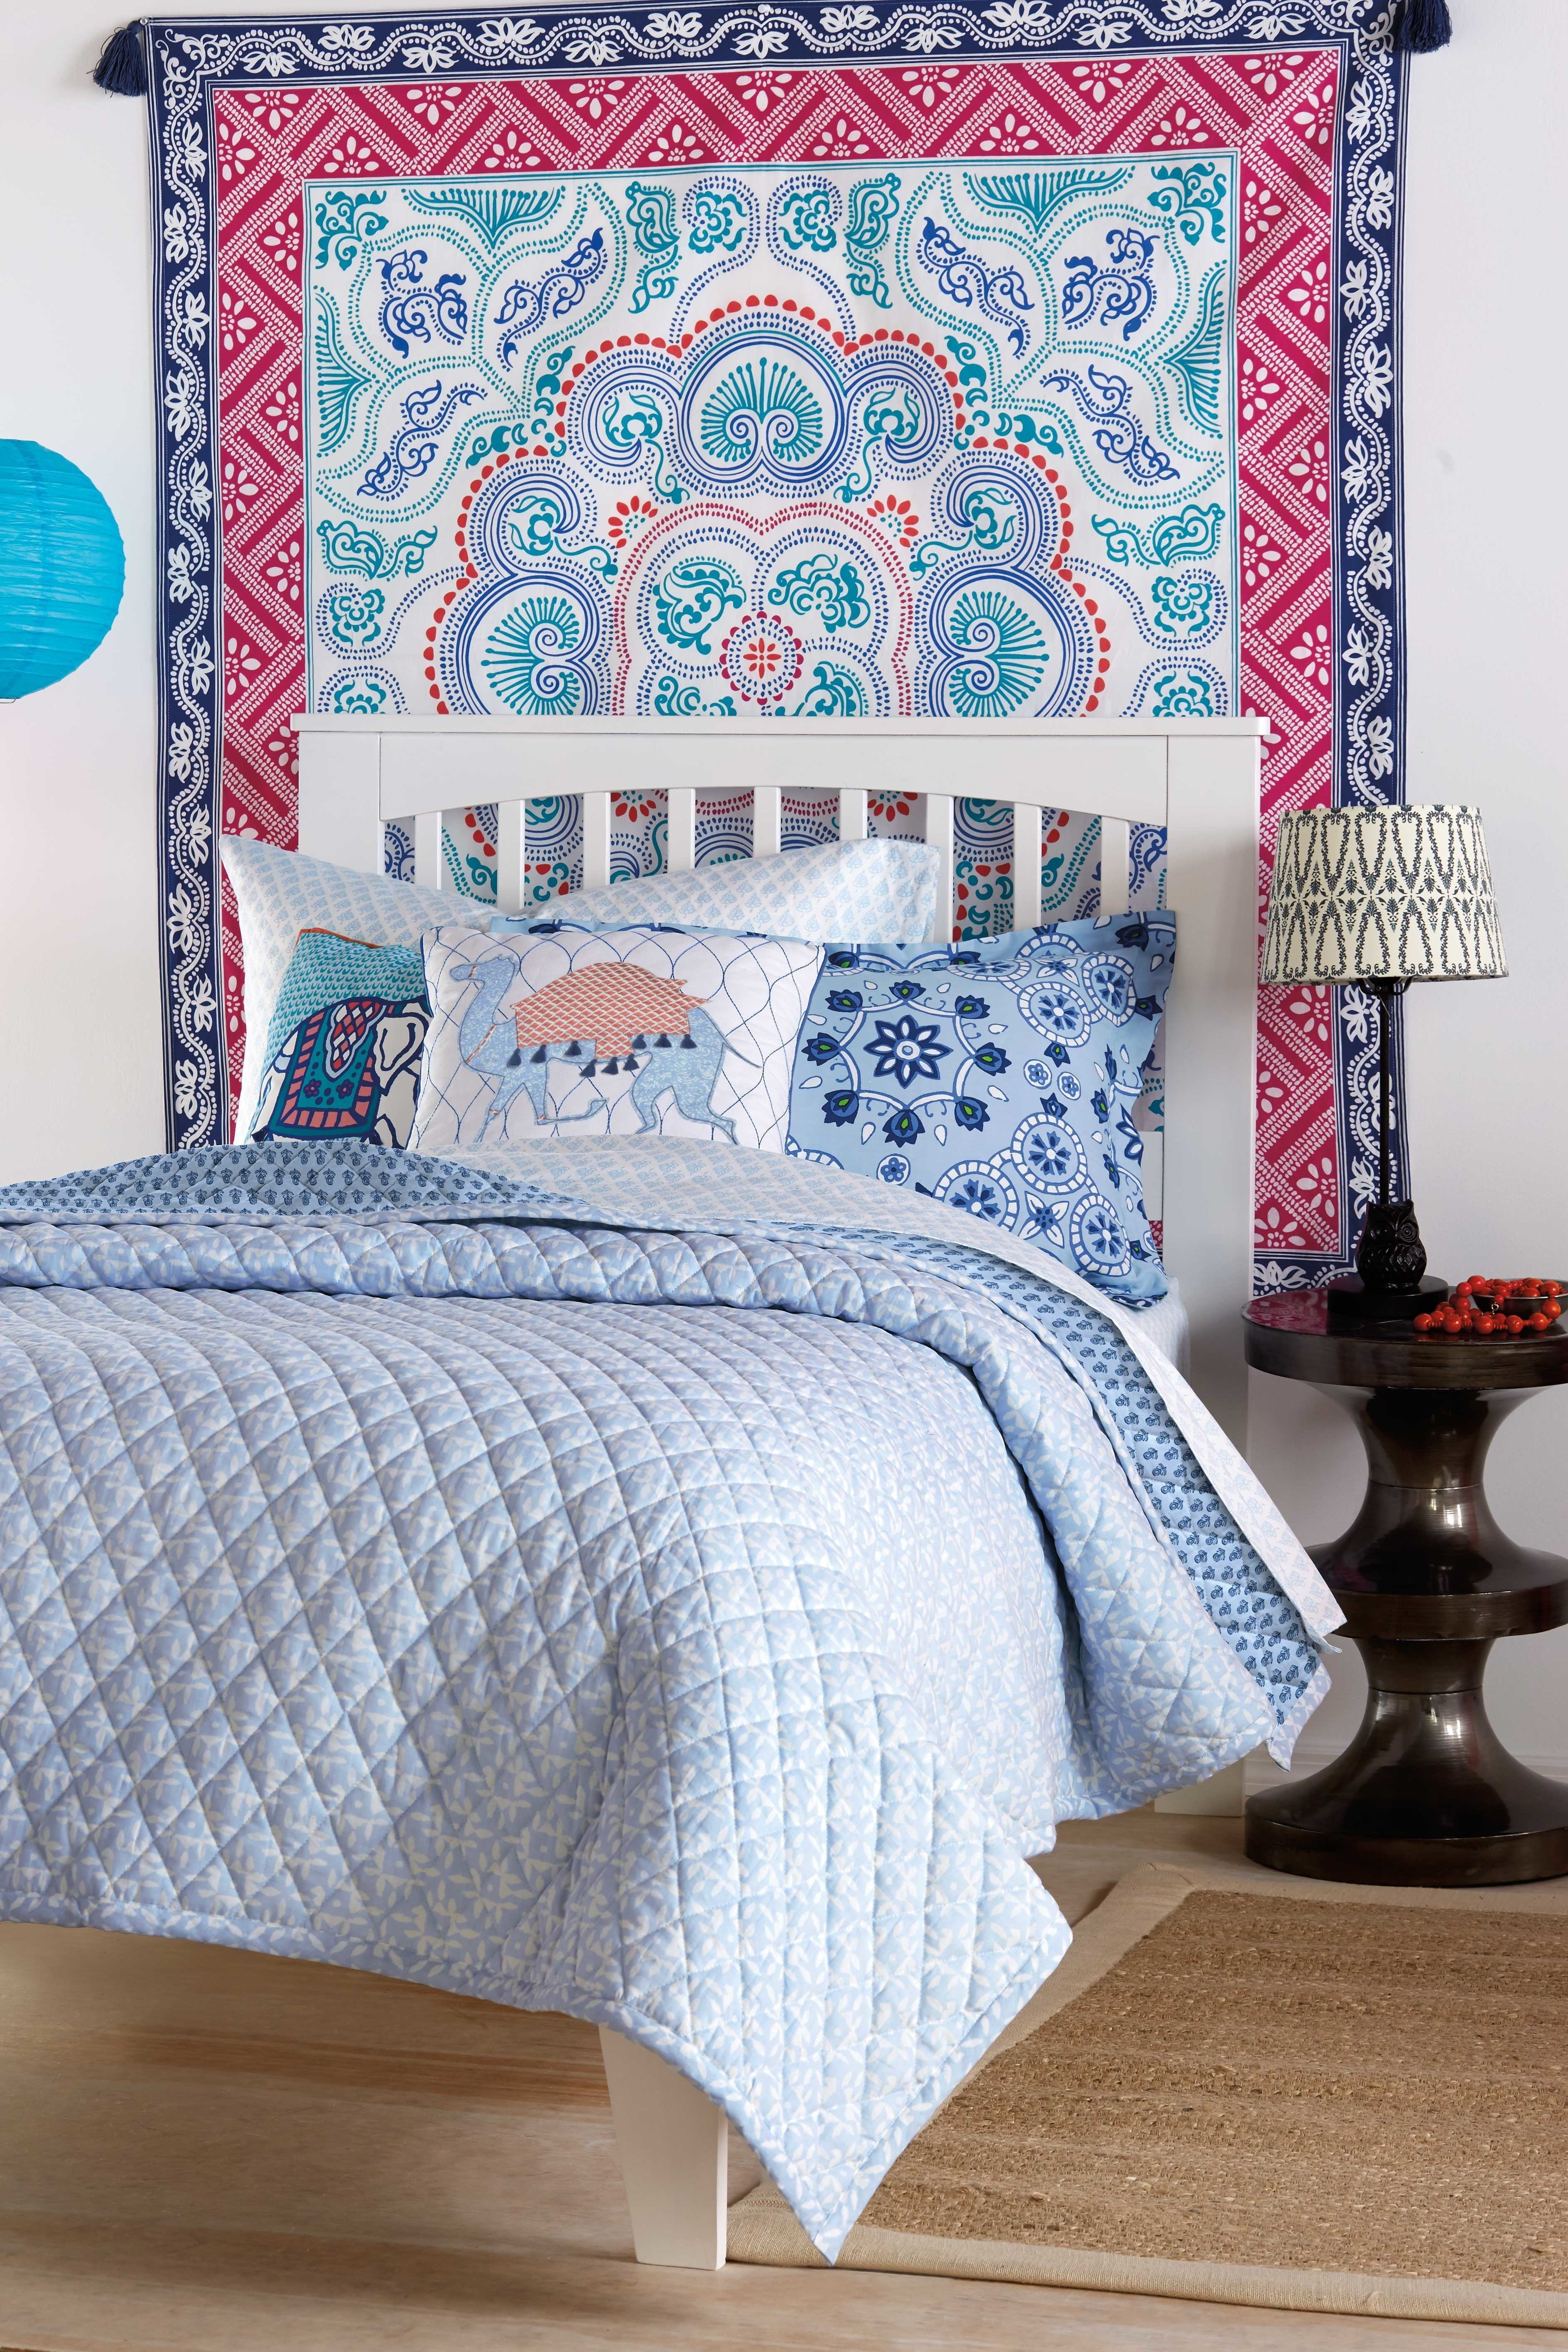 retail robshaw john bedding at s past milwaukee relax basket linenme it bed its linen